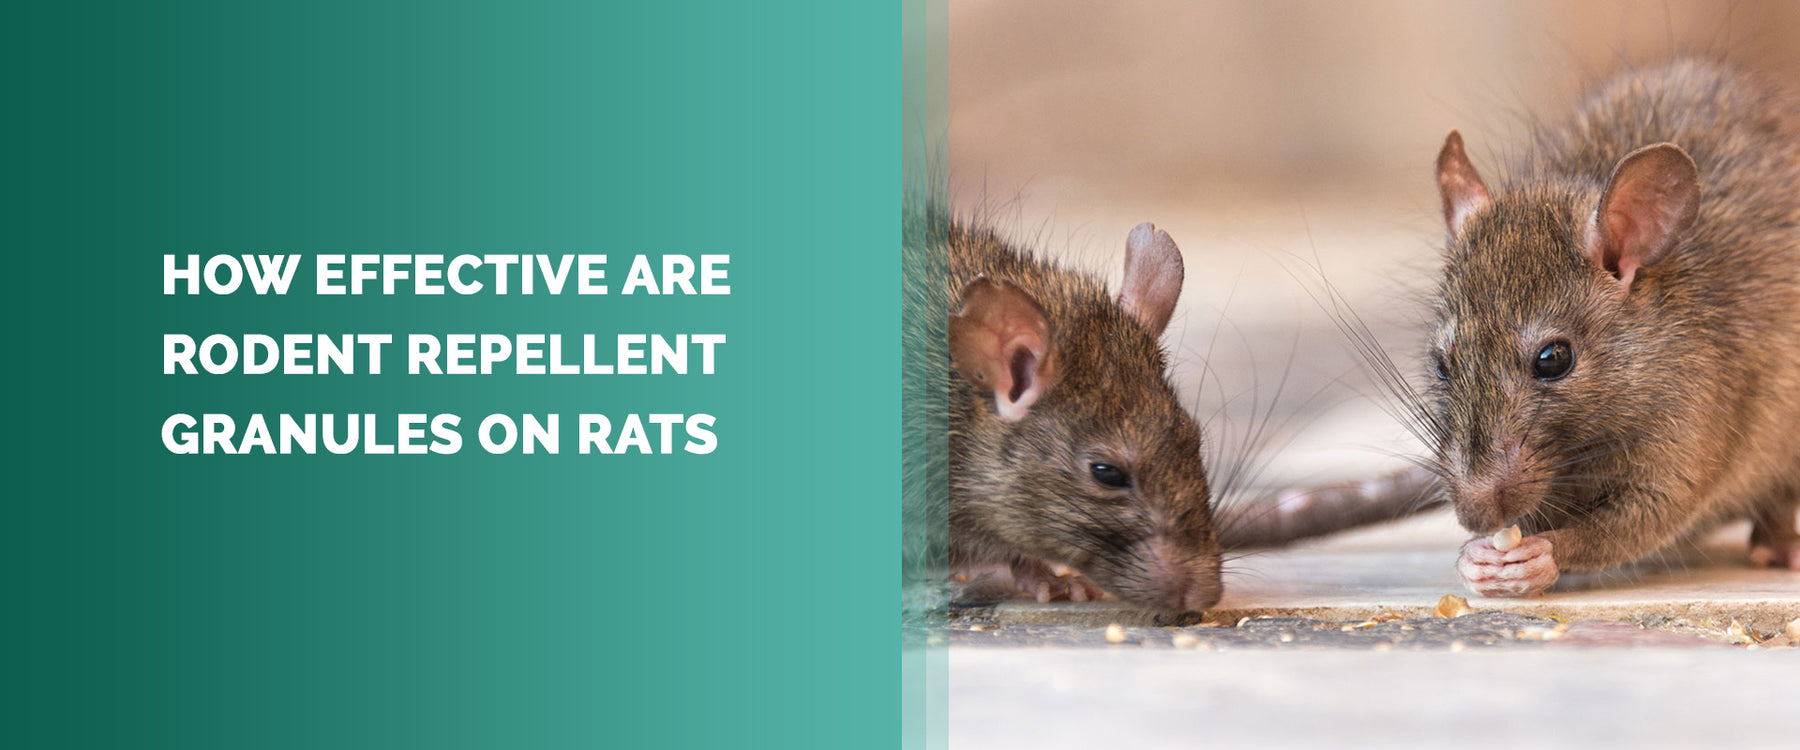 How Effective Are Rodent Repellent Granules On Rats